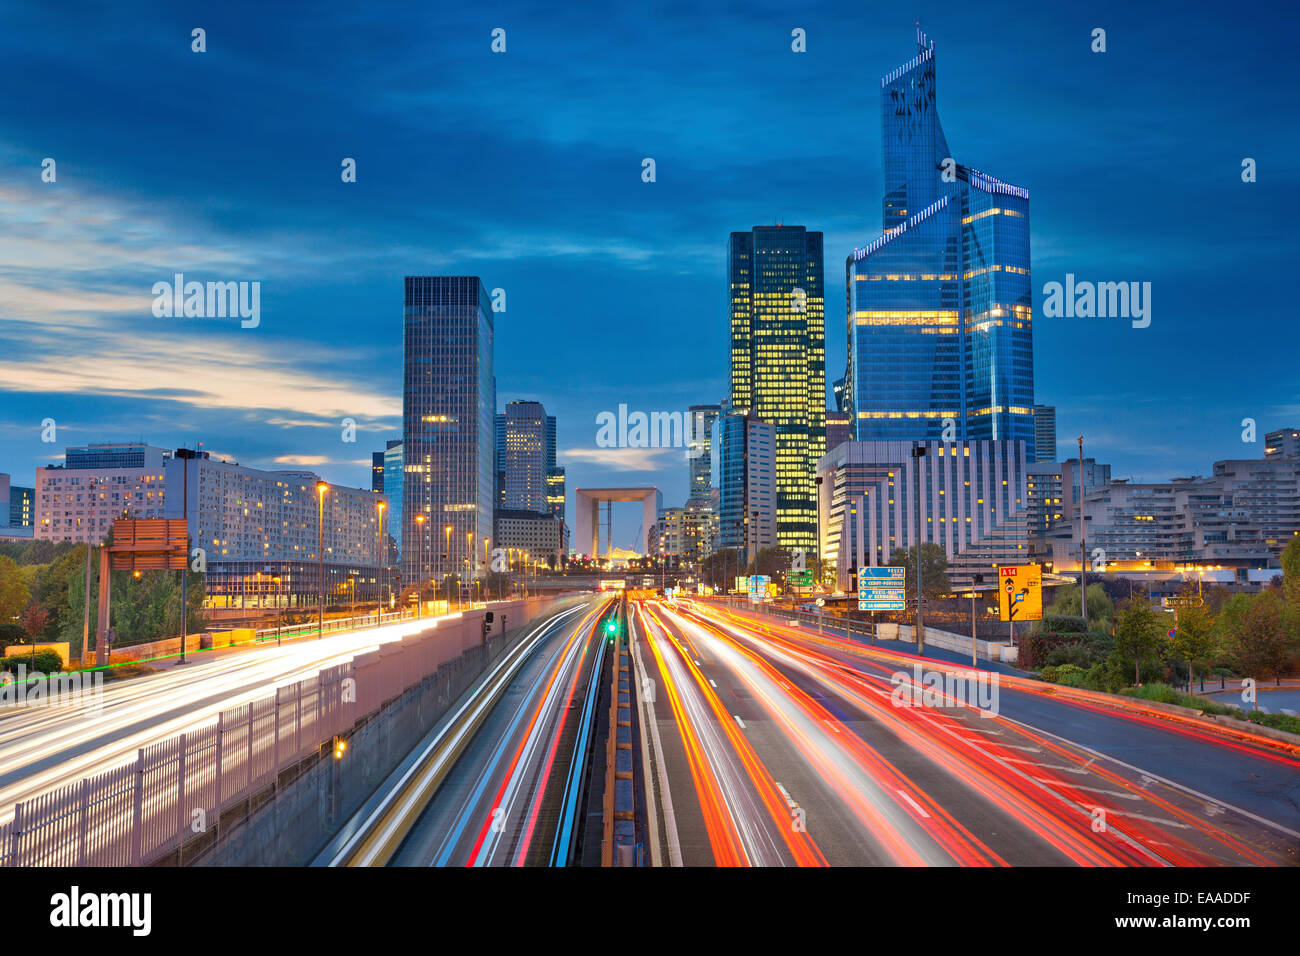 Image of office buildings in modern part of Paris- La Defense during twilight. - Stock Image